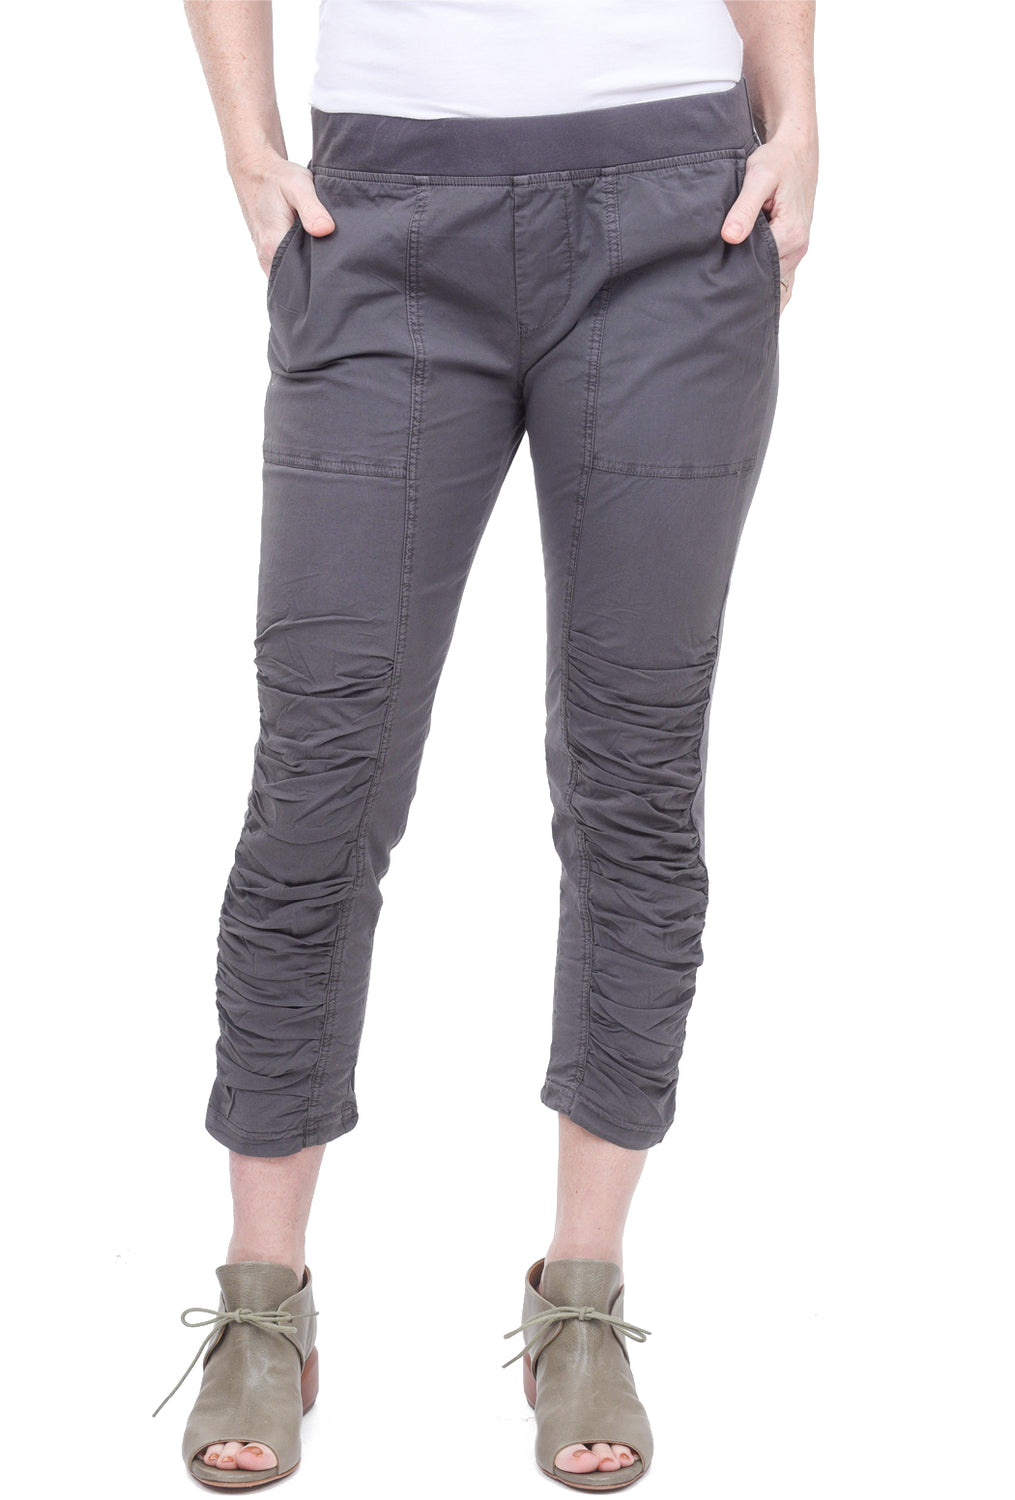 Wearables by XCVI Geyser Cropped Pants, Basalt Gray